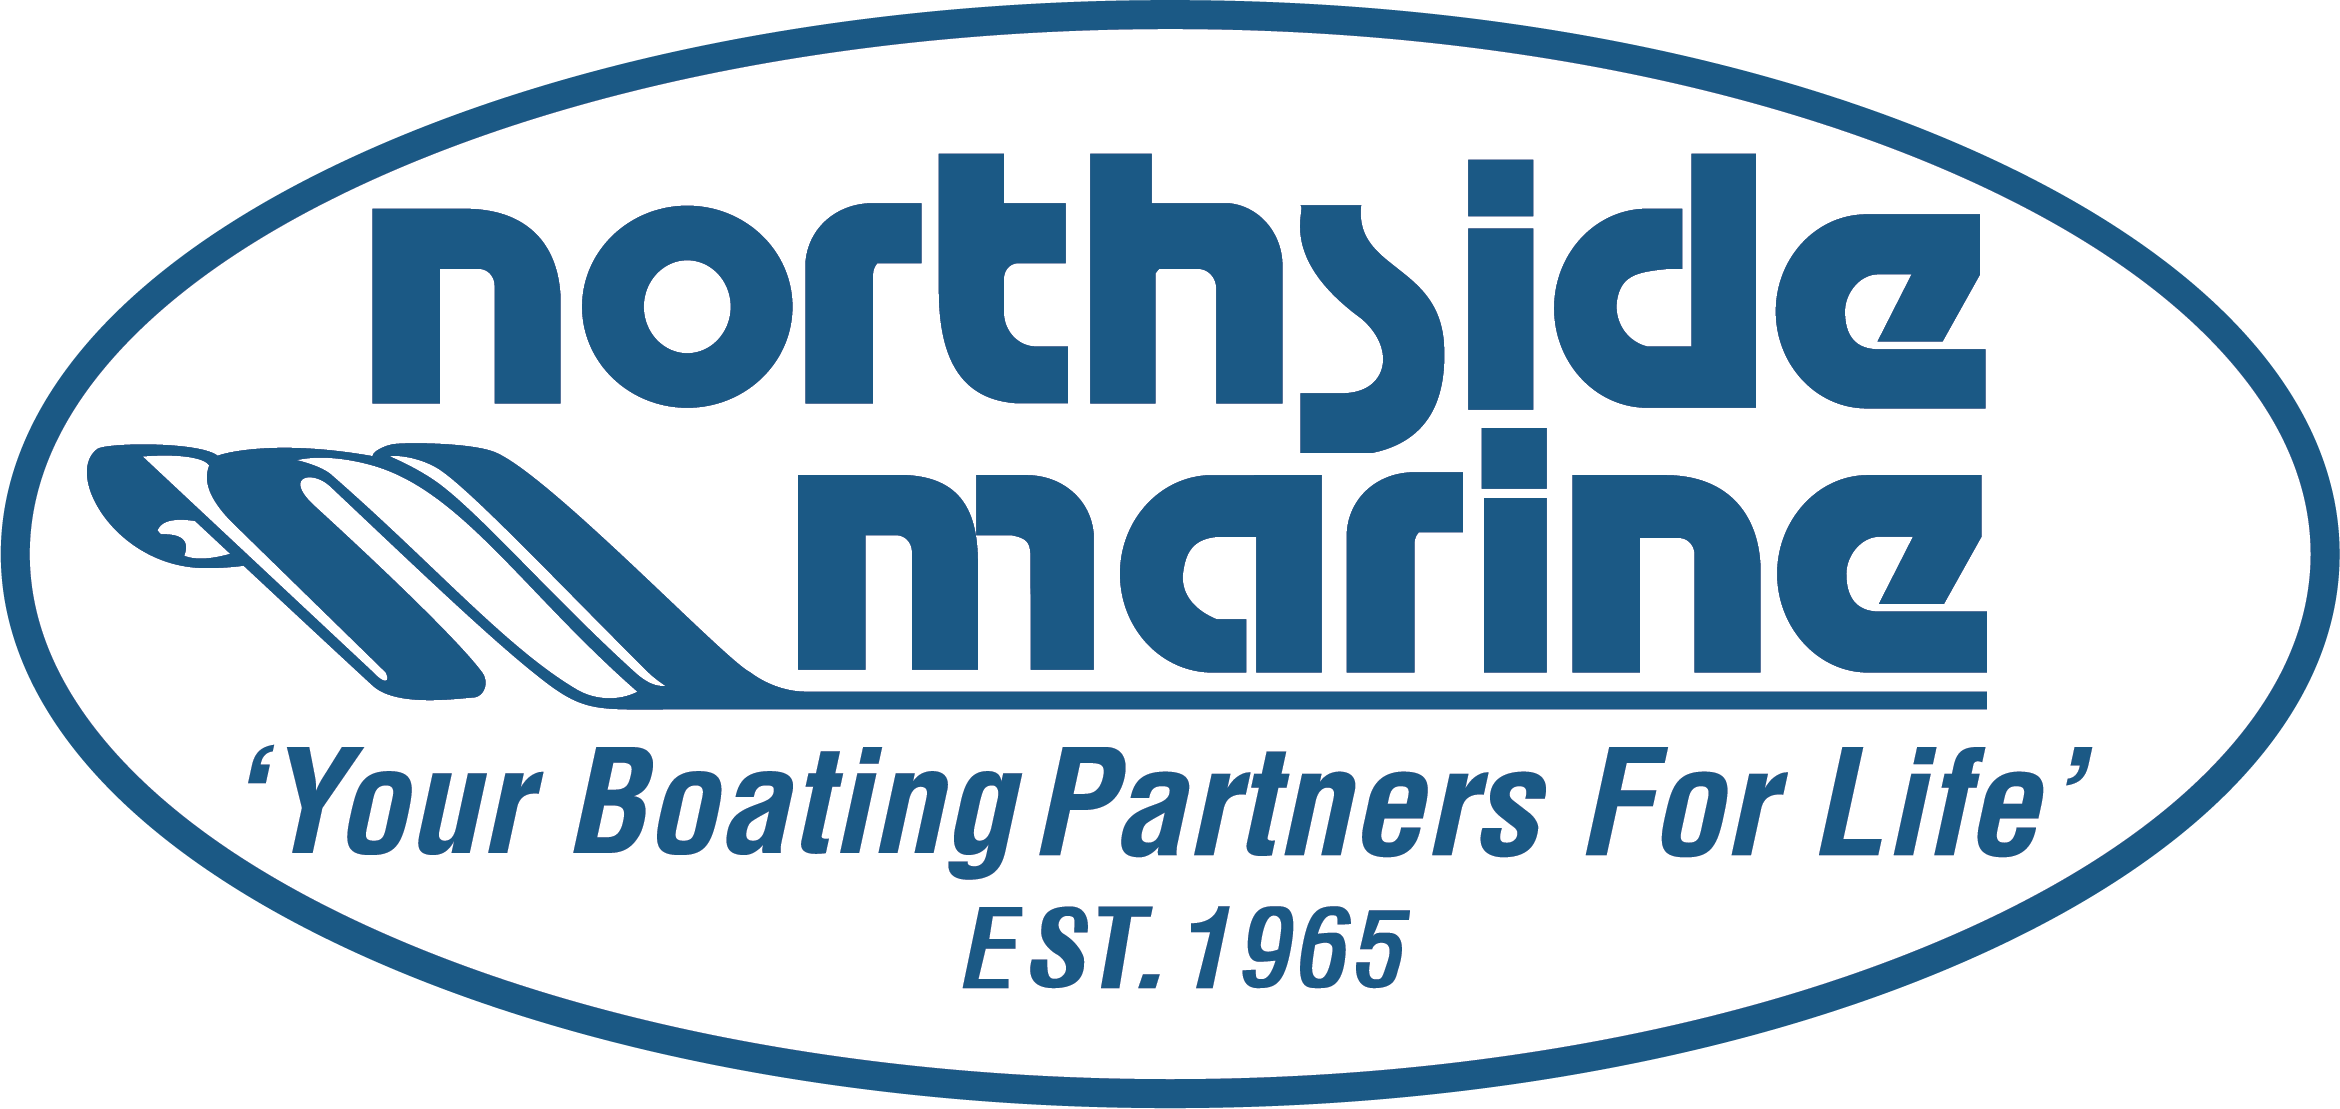 NORTHSIDE MARINE Pty Ltd